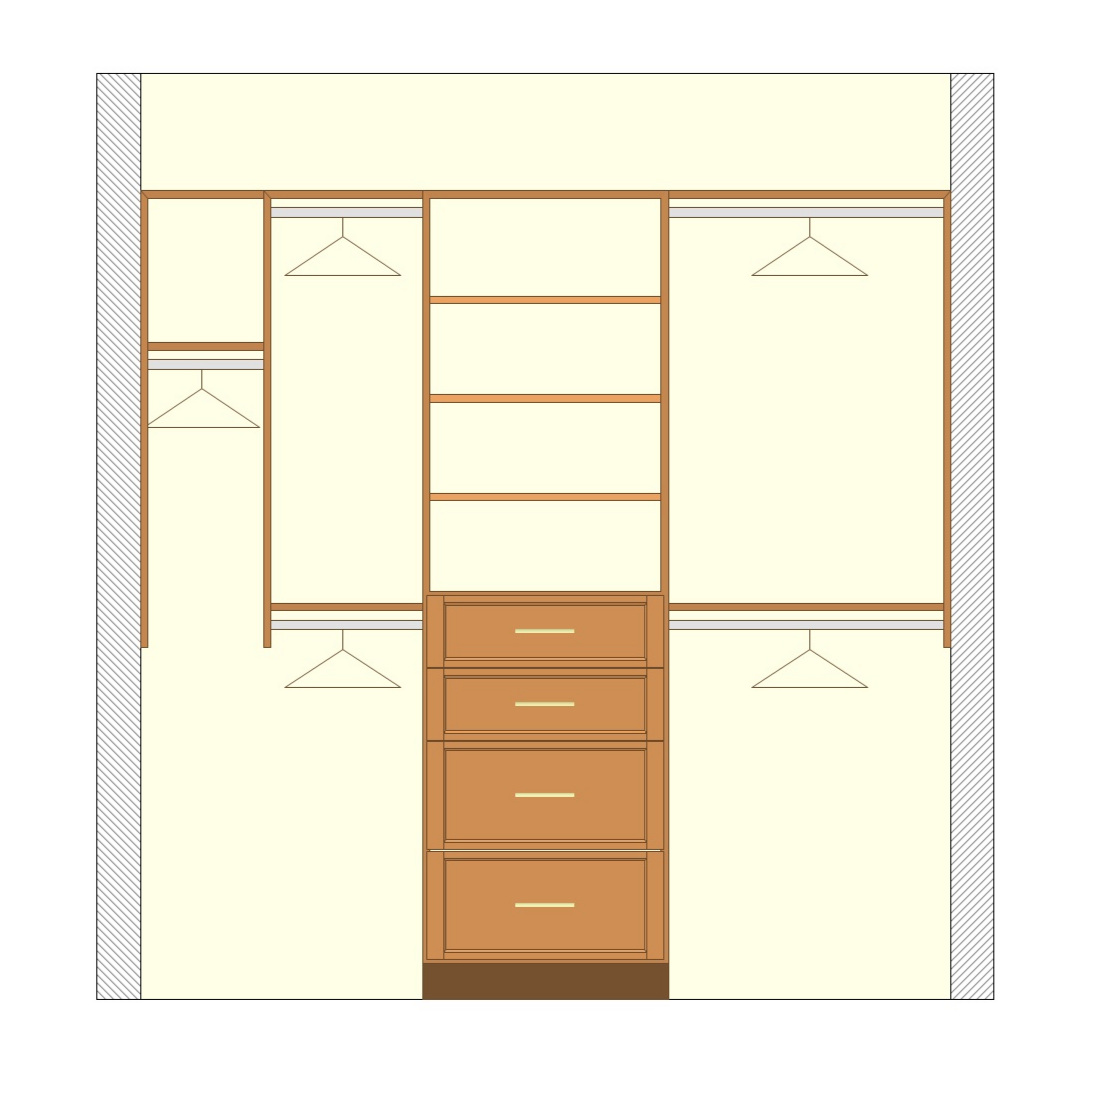 An example of a deluxe reach-in closet configuration